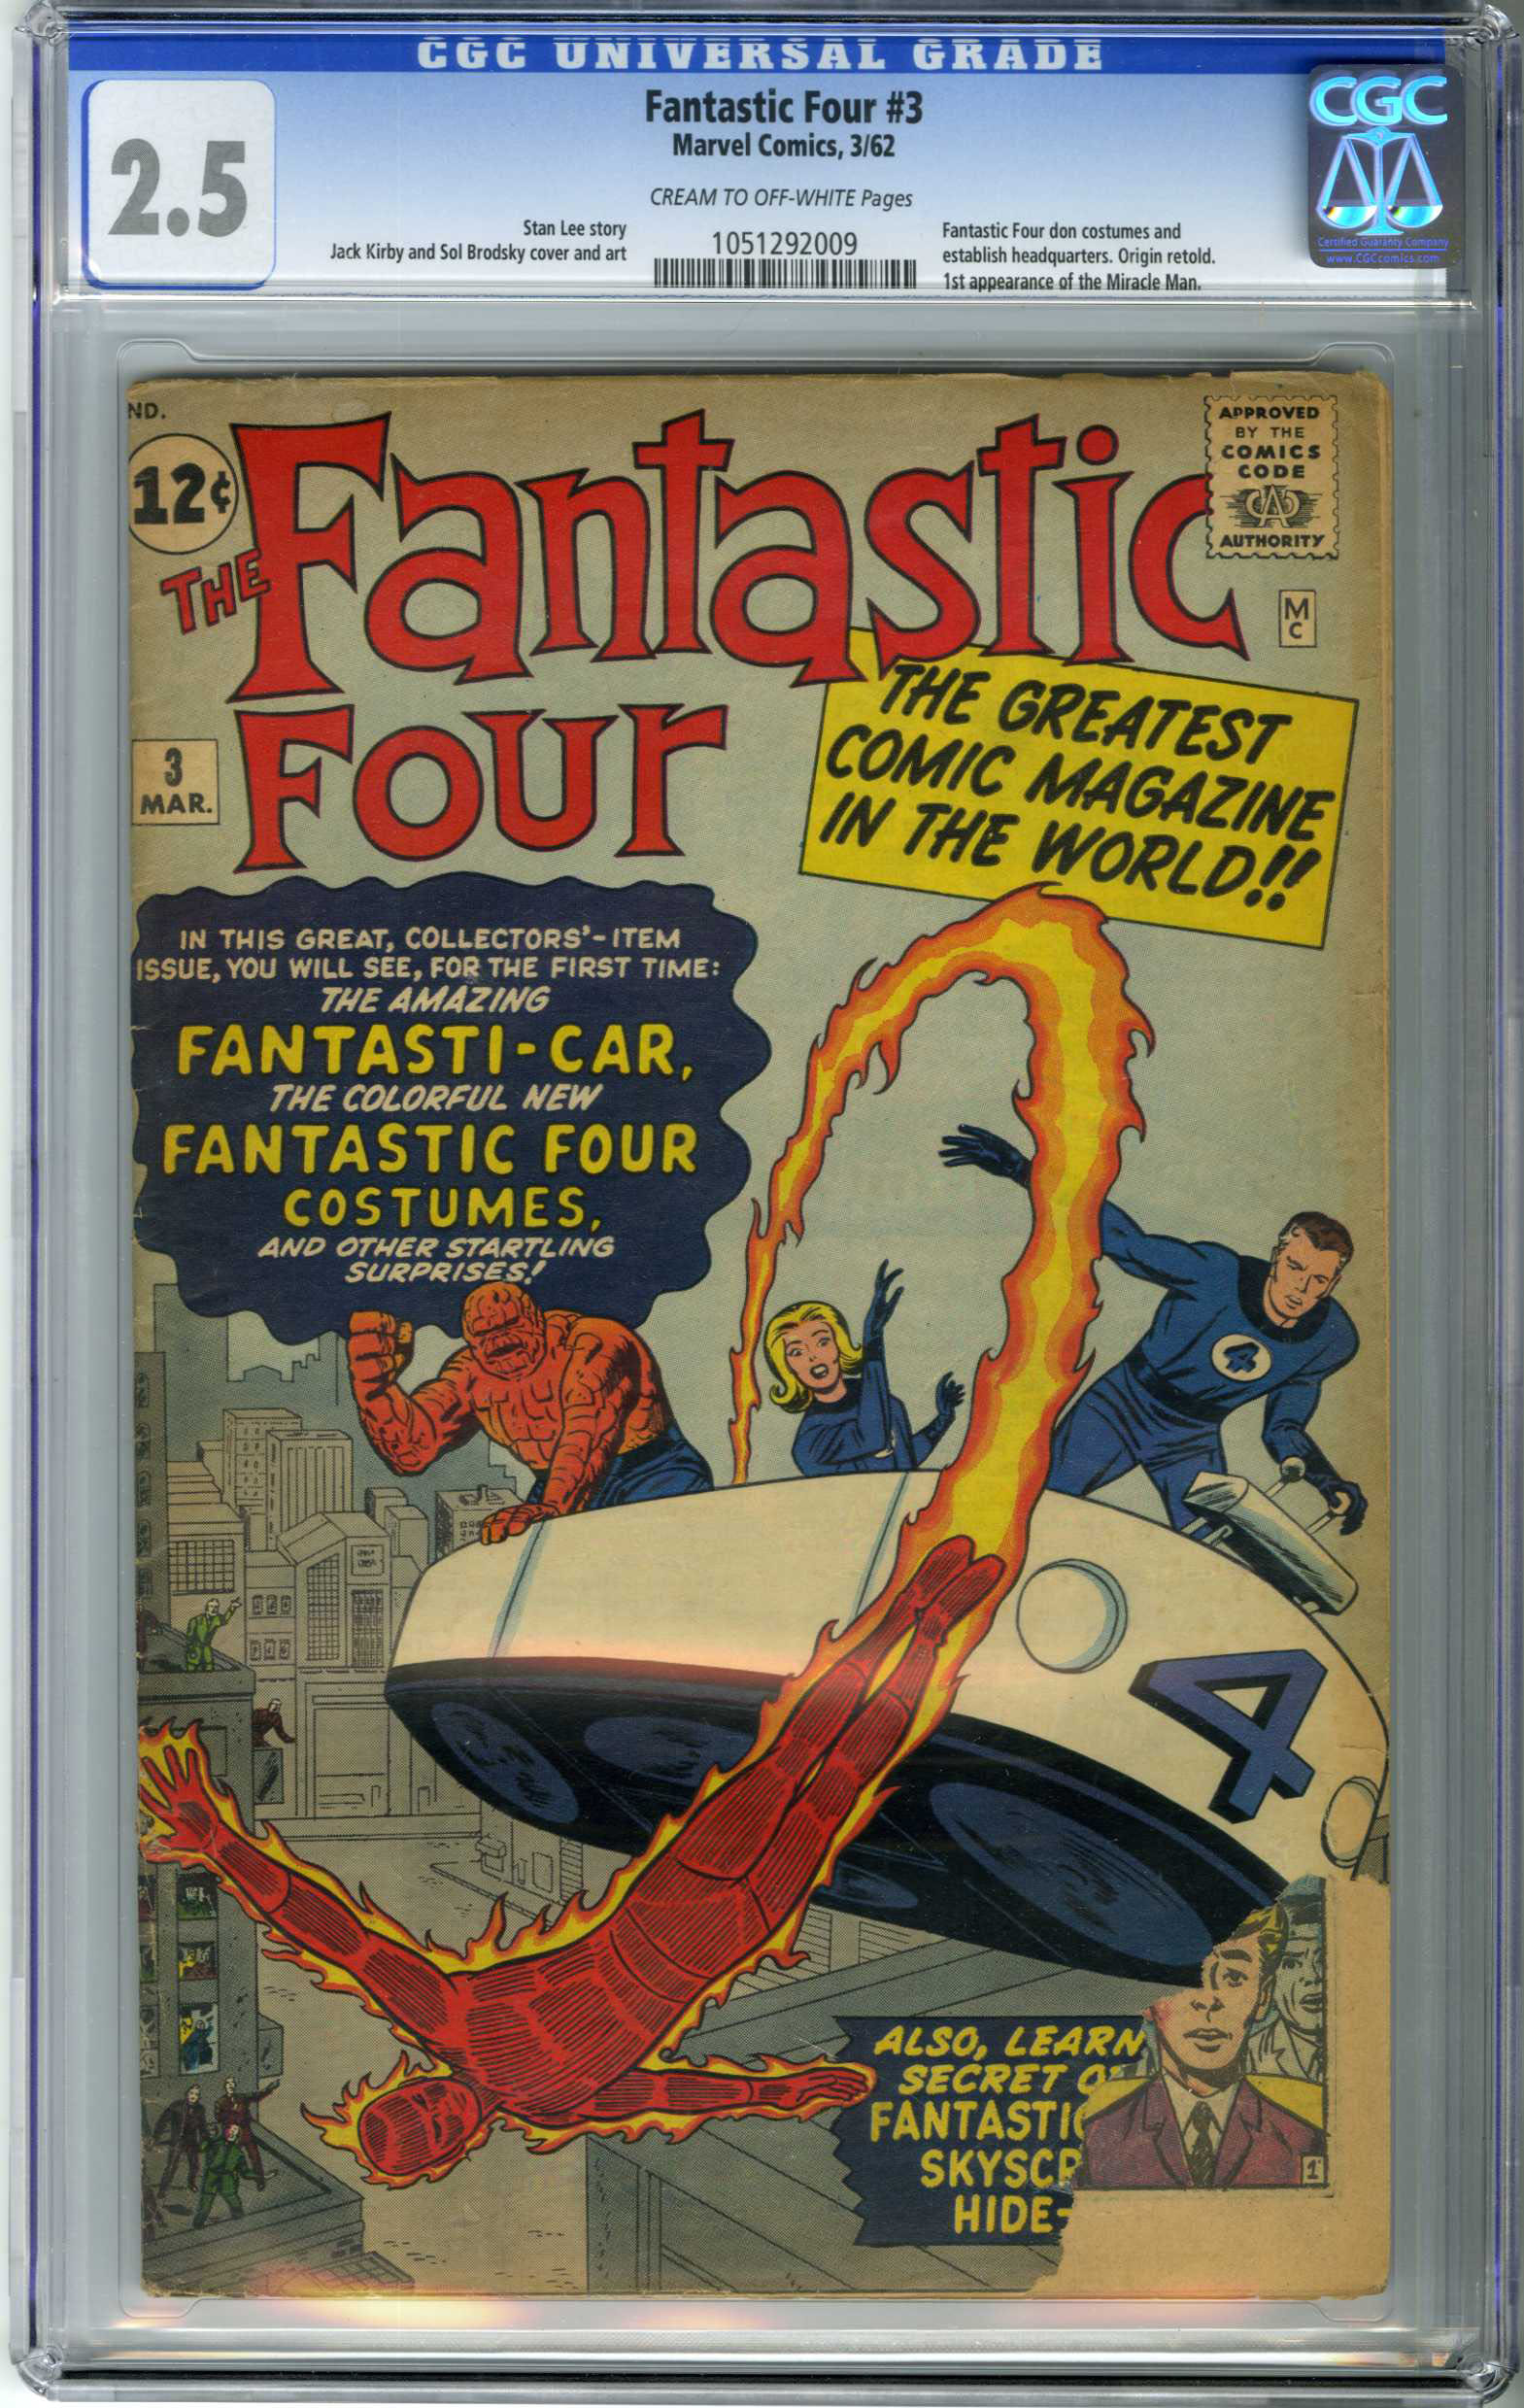 FANTASTIC FOUR #3 (1962) CGC GD+ 2.5 COW Pages / ORIGIN RE-TOLD / 1st IN COSTUME